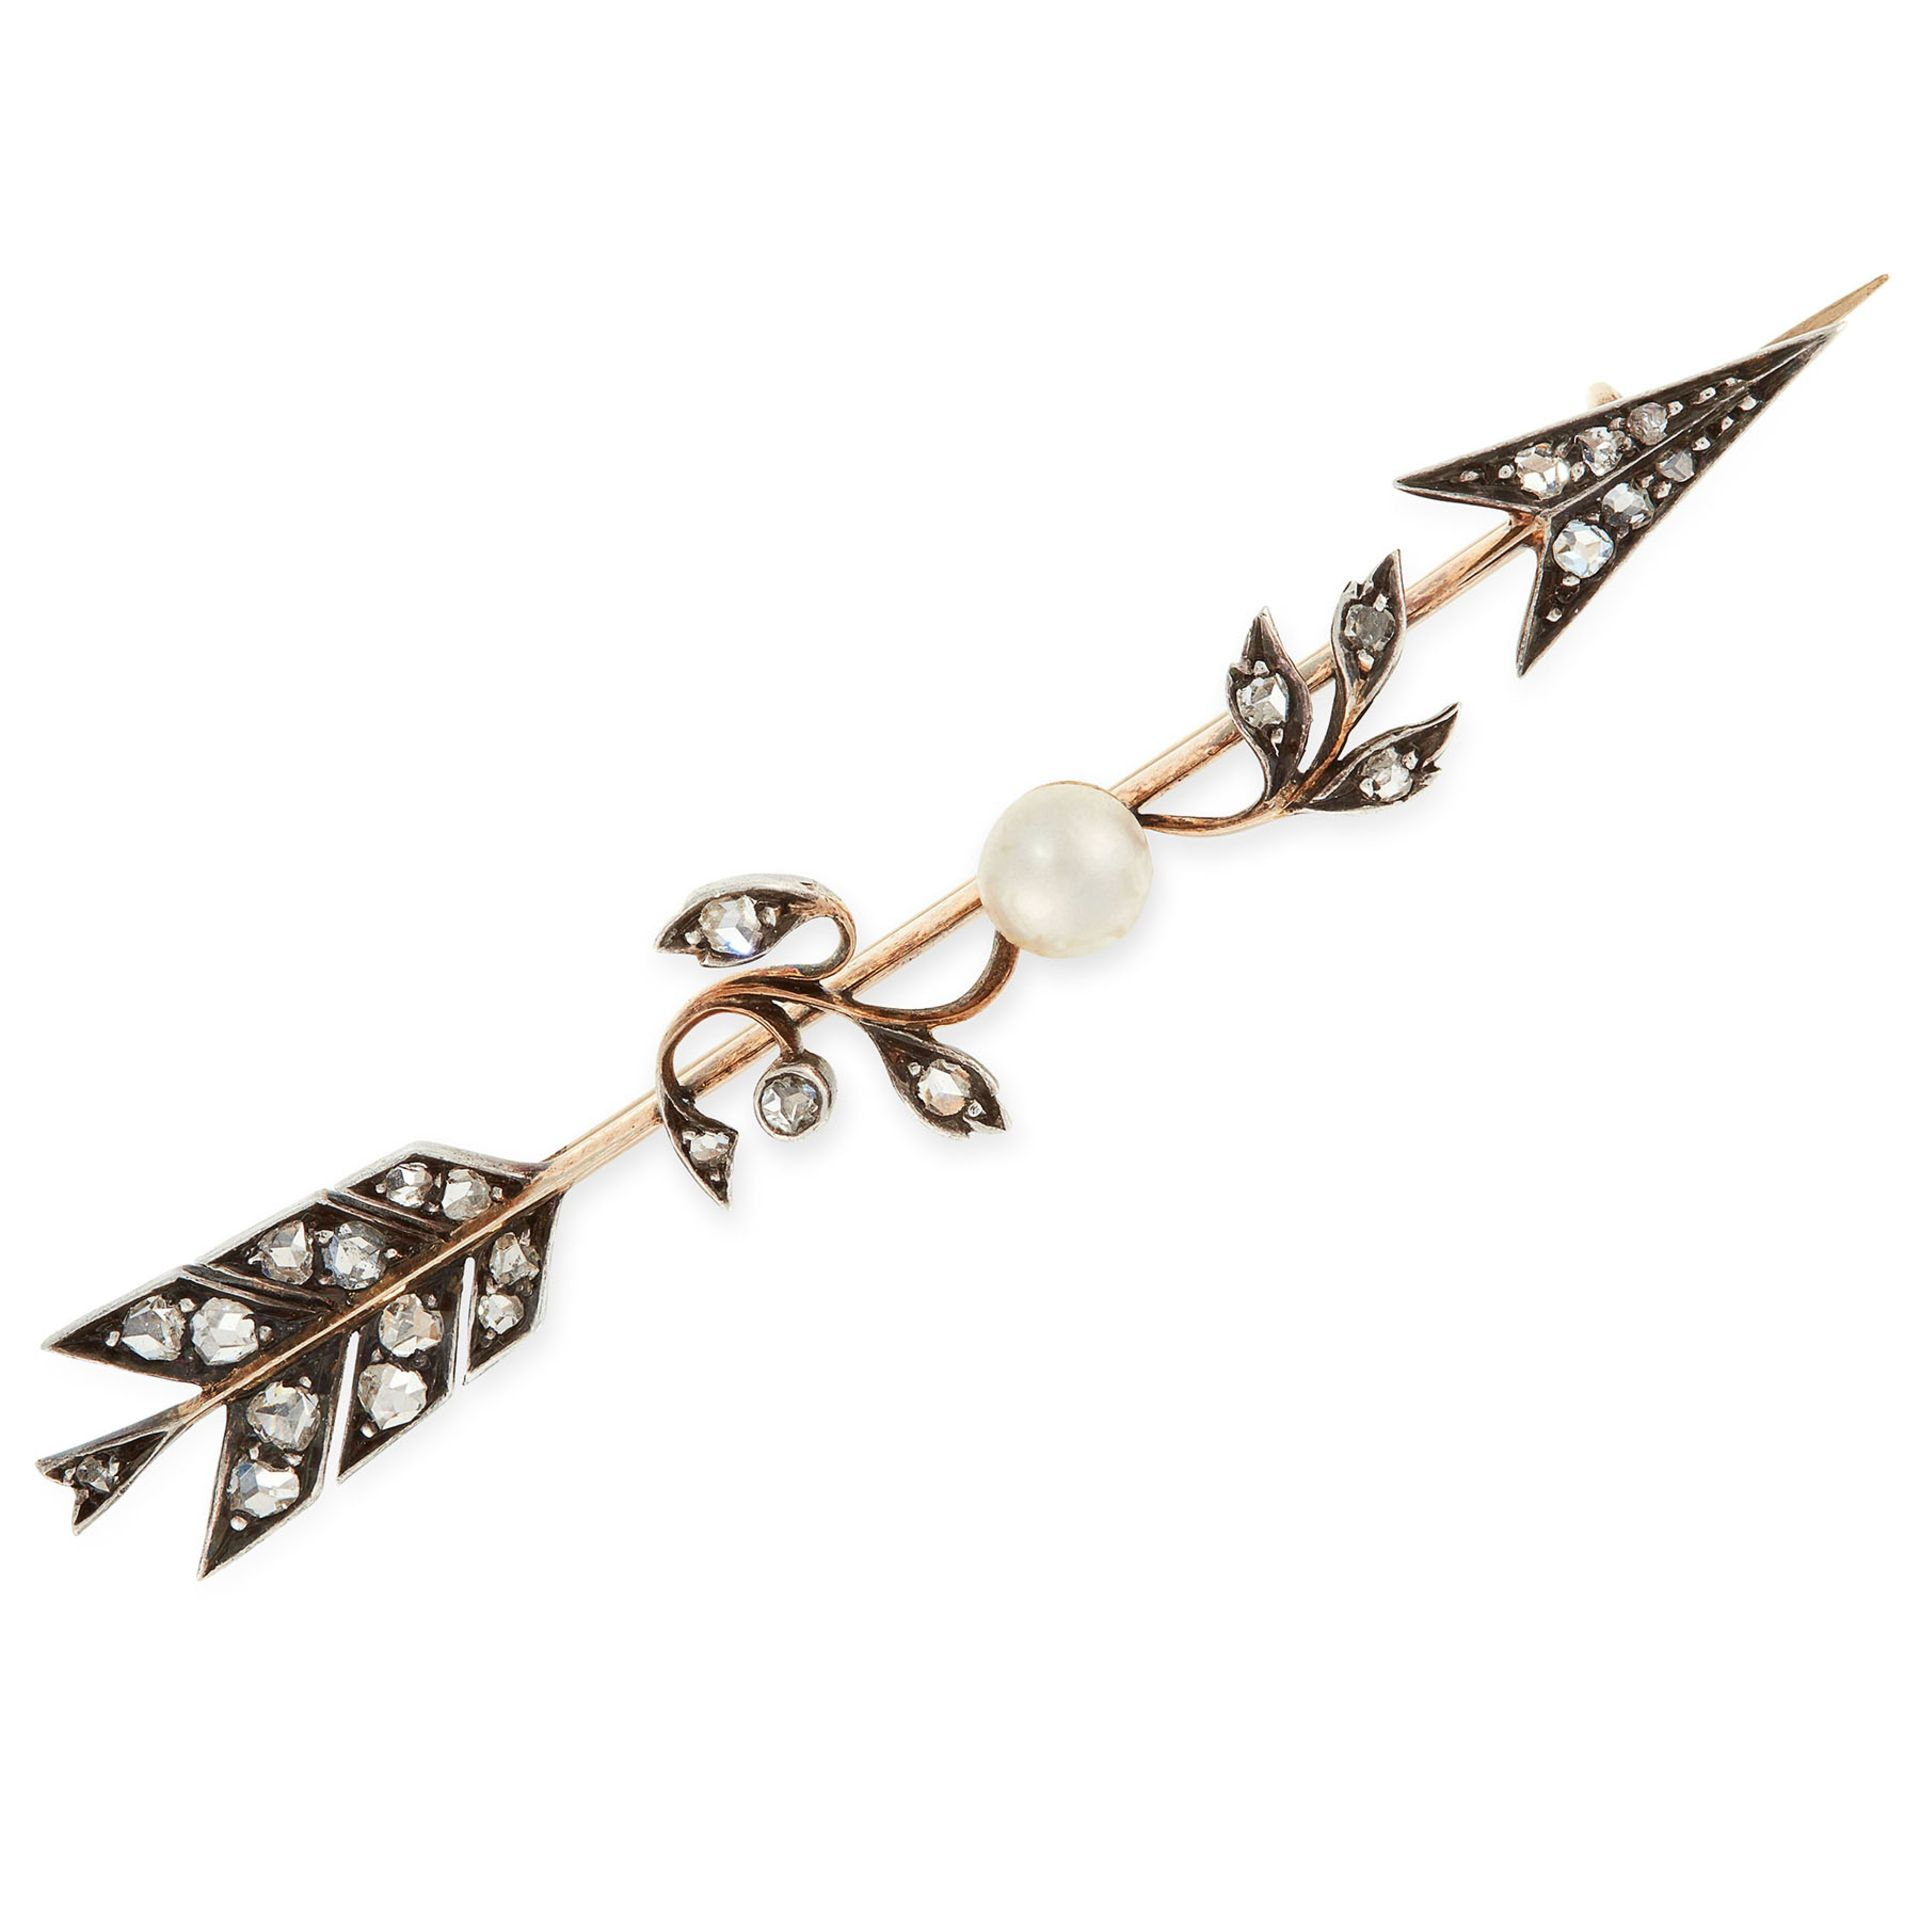 AN ANTIQUE DIAMOND AND PEARL ARROW BROOCH in yellow gold and silver, designed as an arrow, the